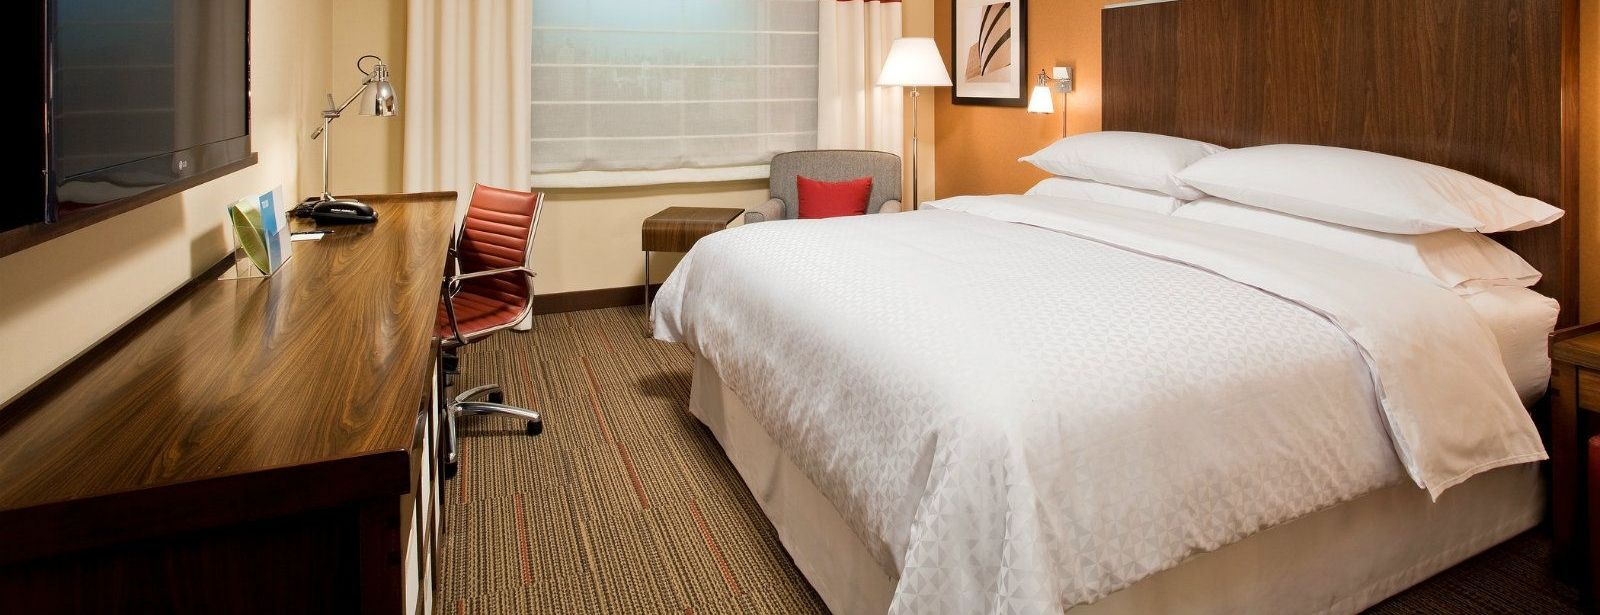 Atlanta Airport Accommodations - Accessible Room